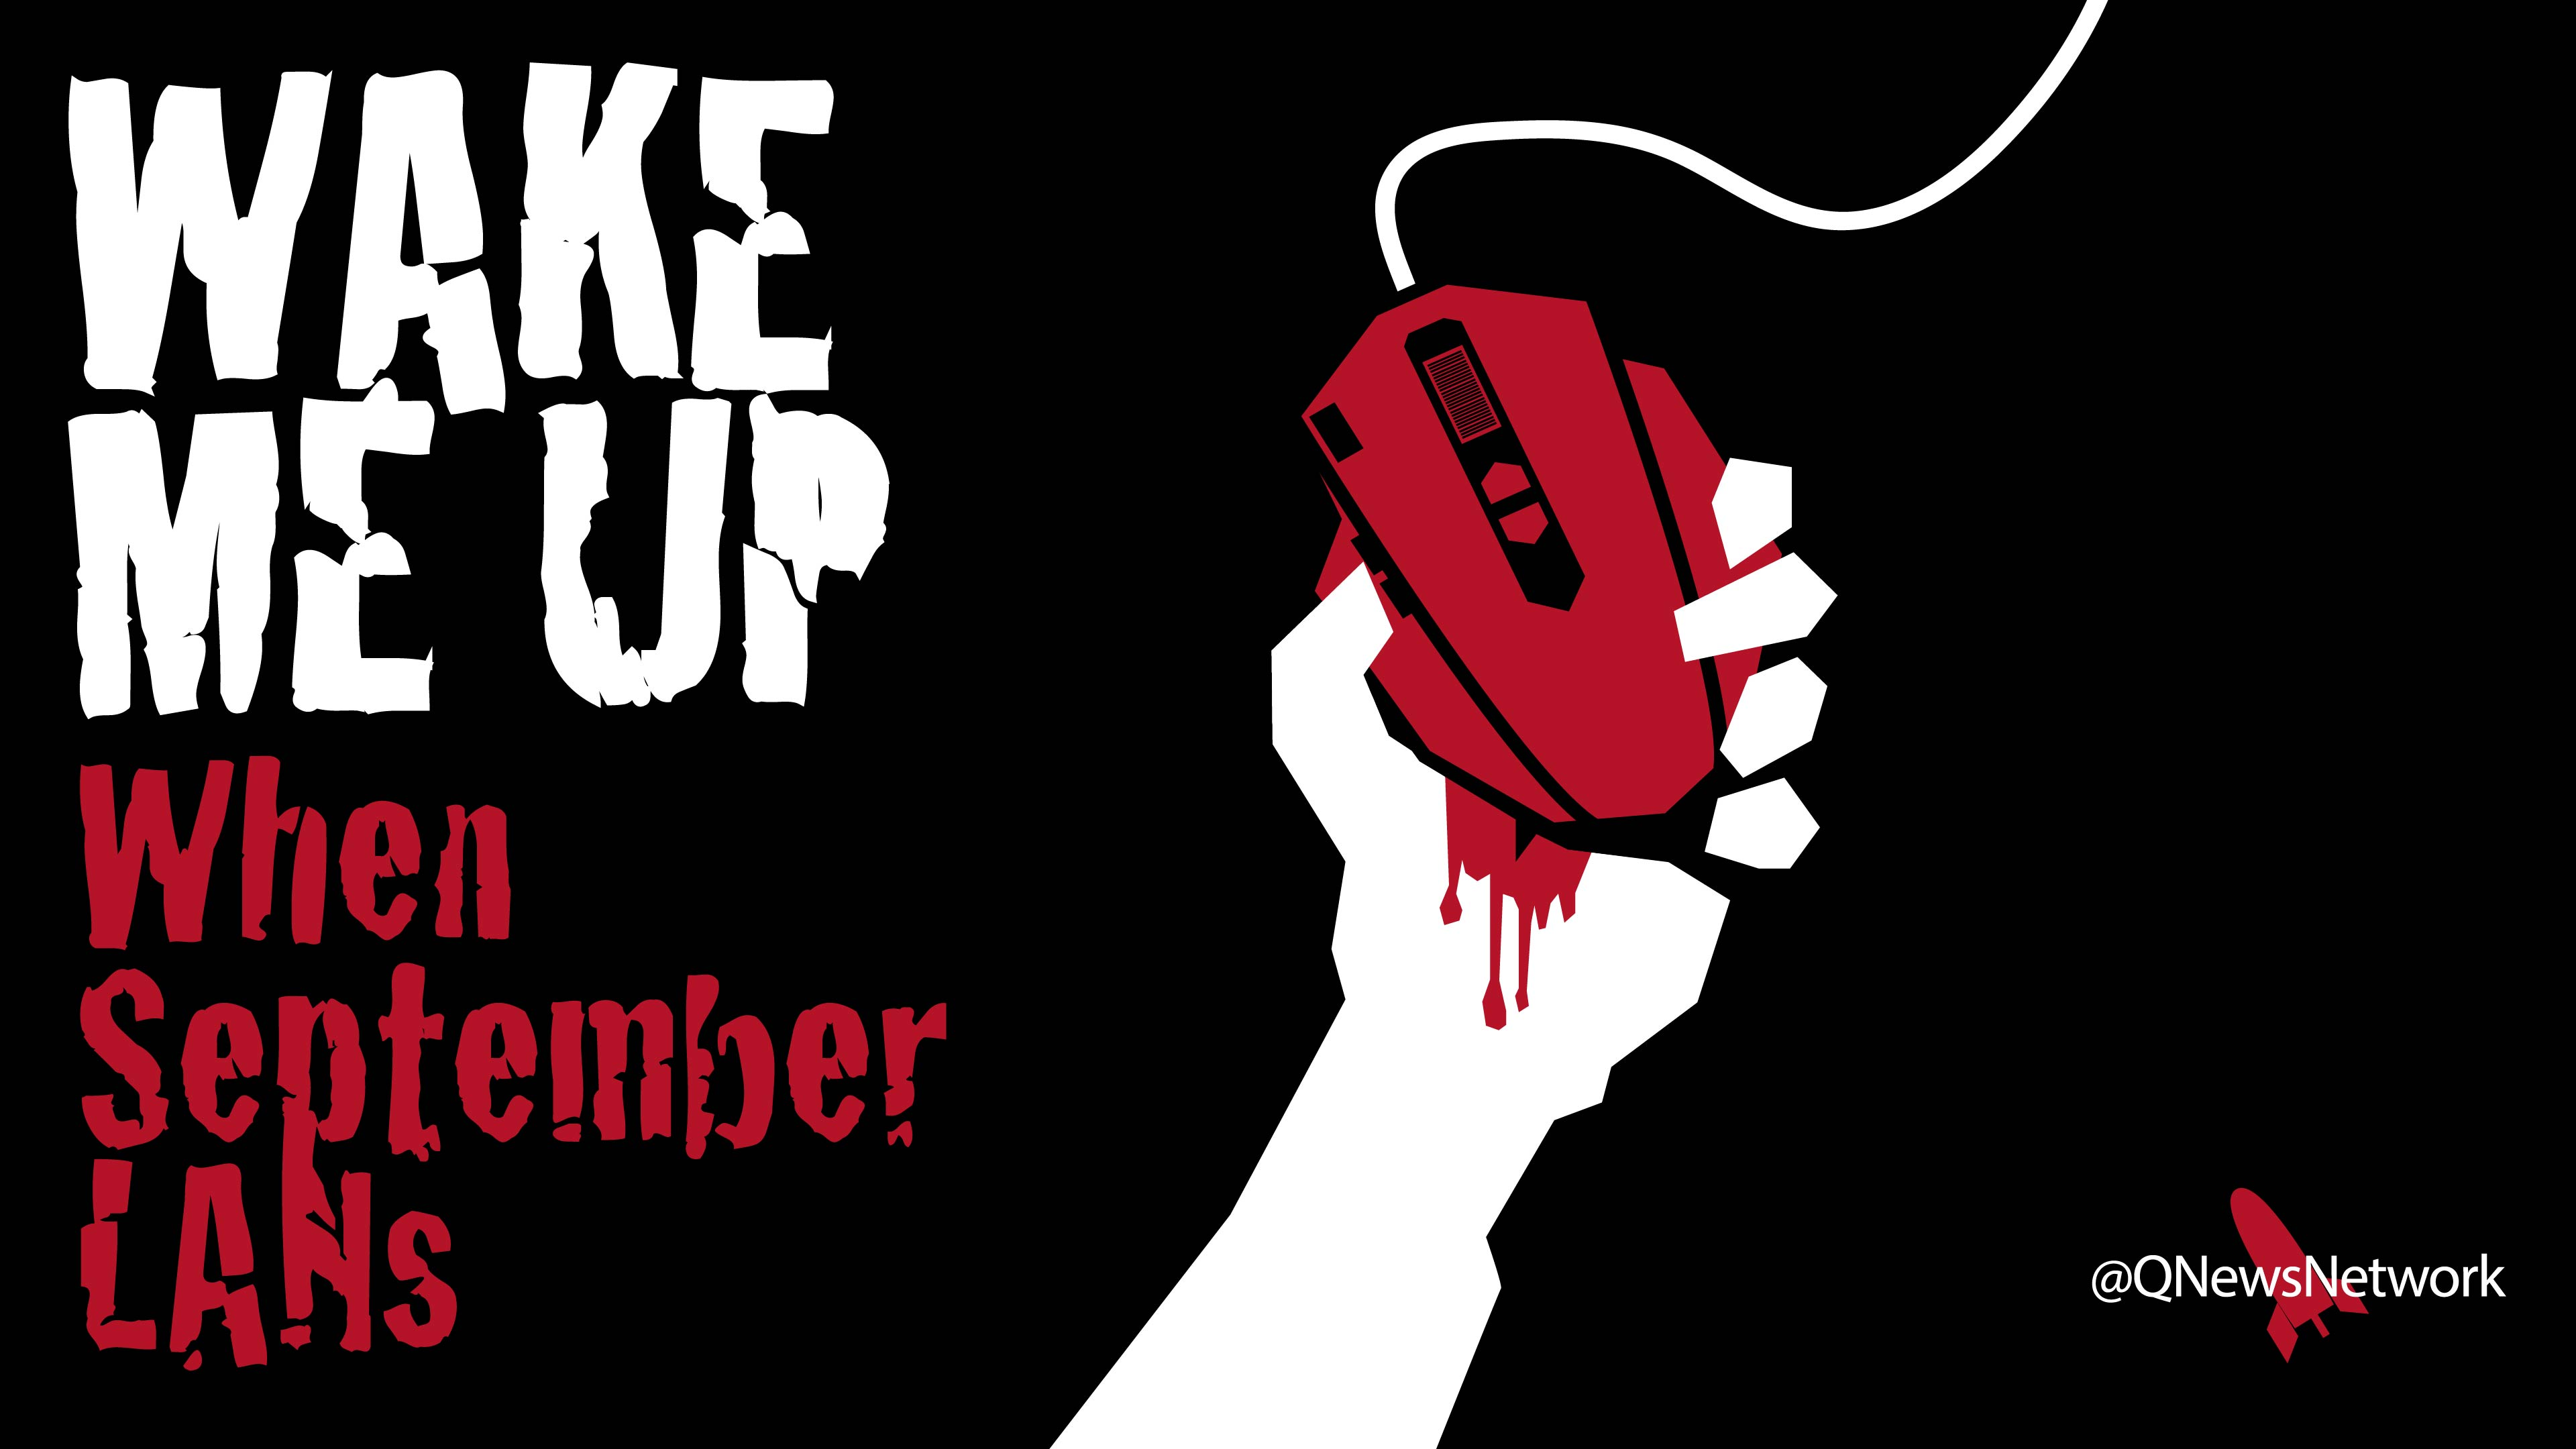 Wake me up wallpaper-01